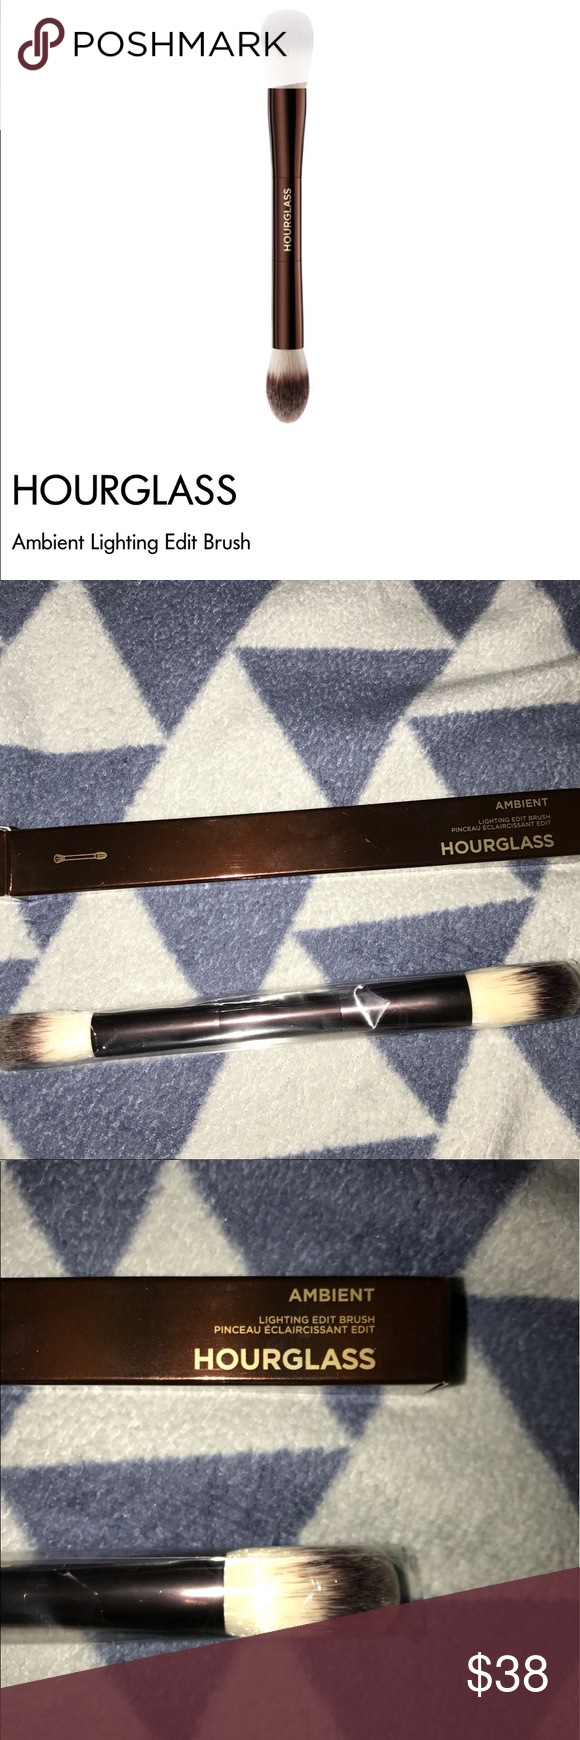 NEW••HOURGLASS AMBIENT LIGHT EDIT BRUSH New in box. Have a